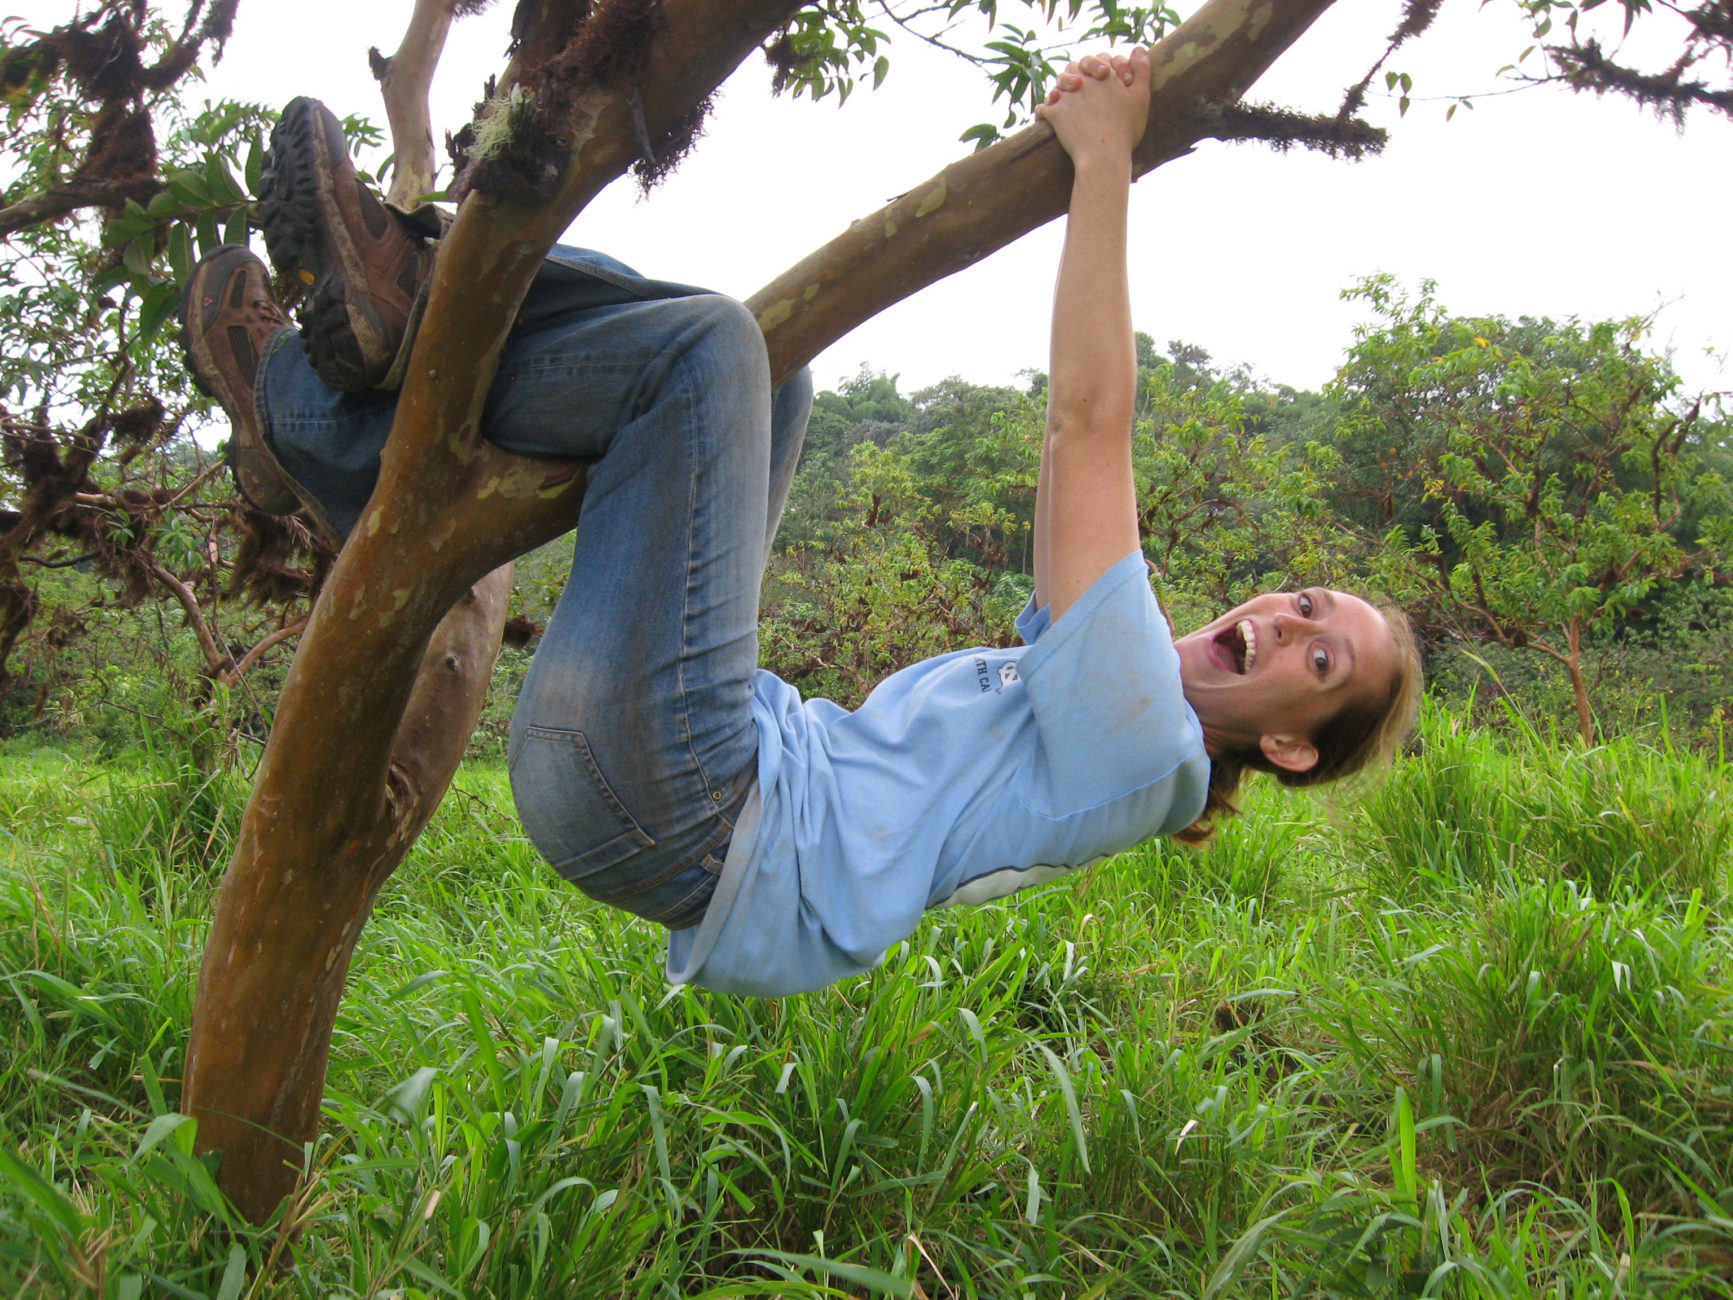 Photo courtesy of Madelyn PercyPercy does her best impression of a sloth in an invasive guayaba (guava) tree. Guayaba was introduced to the Galápagos and is harmful to the native species, but good for cow pastures, as it provides the cows shade. Madelyn is interested in understanding how the guayaba and other invasive species might affect soil structure or chemistry.